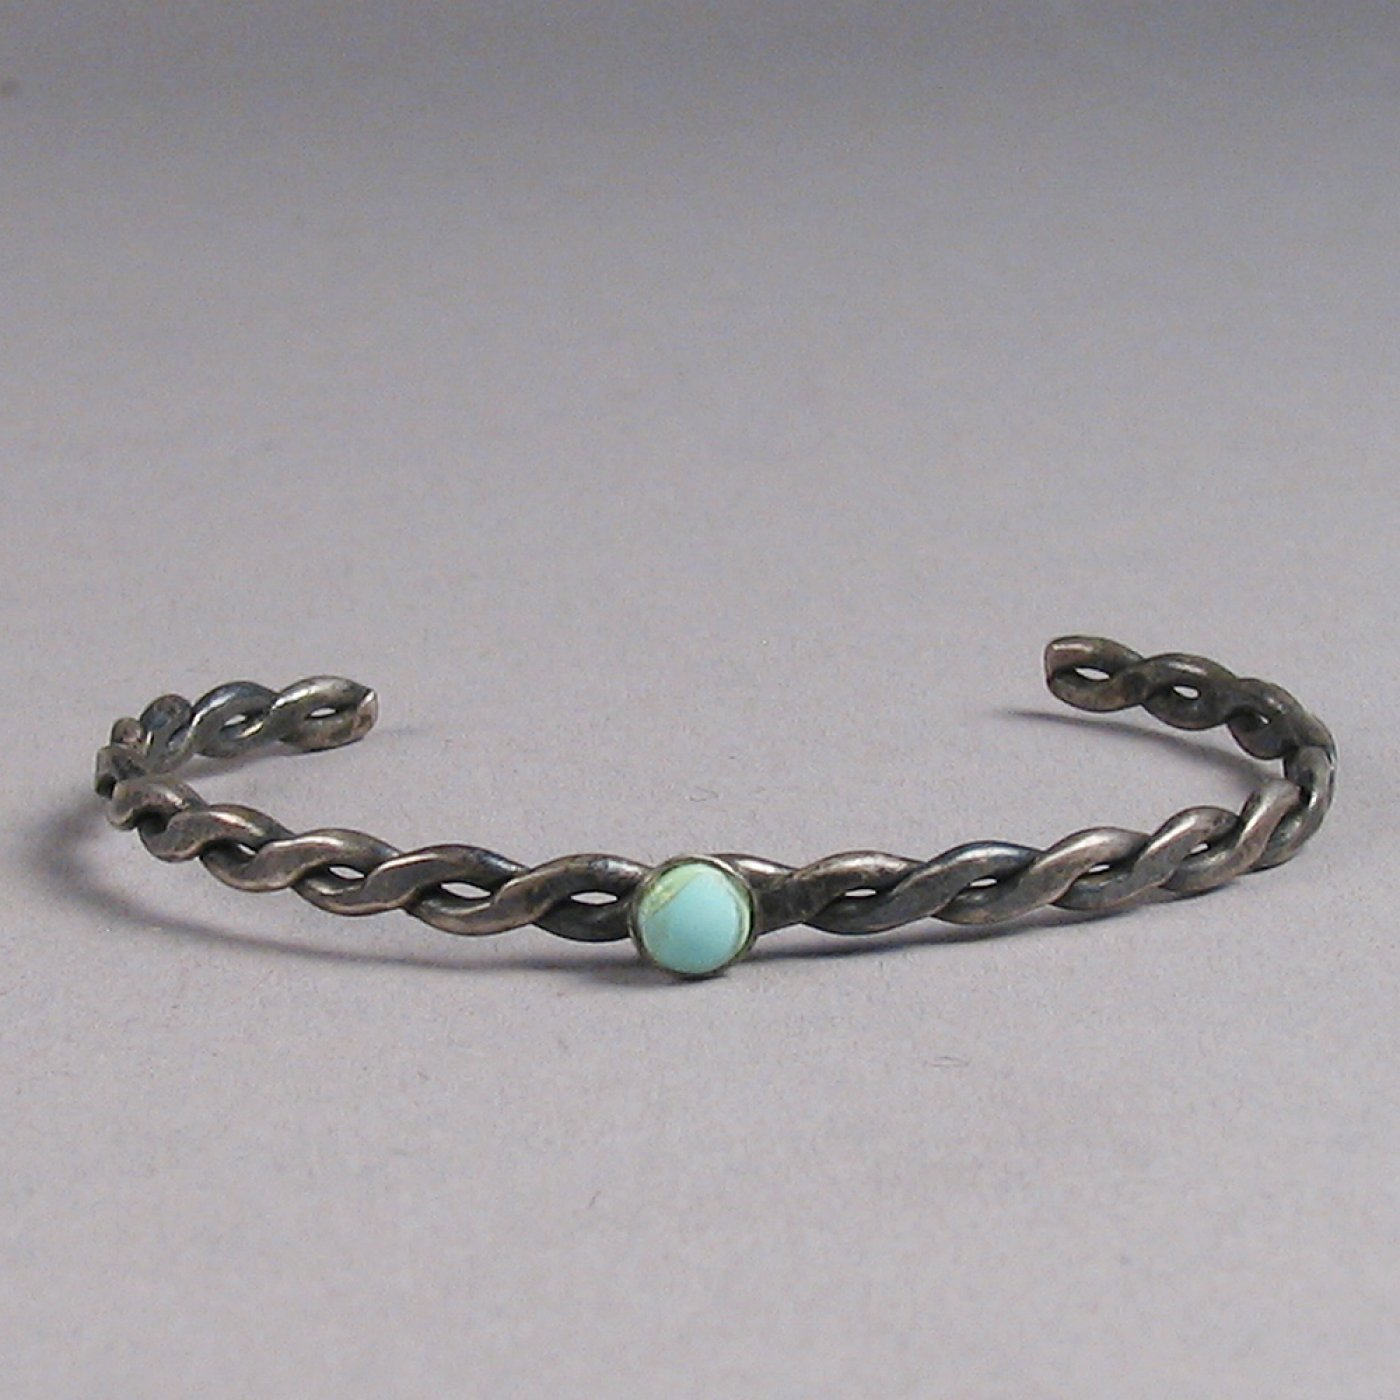 Vintage Navajo Twisted Wire Childs Bracelet with Stone c. 1940 ...